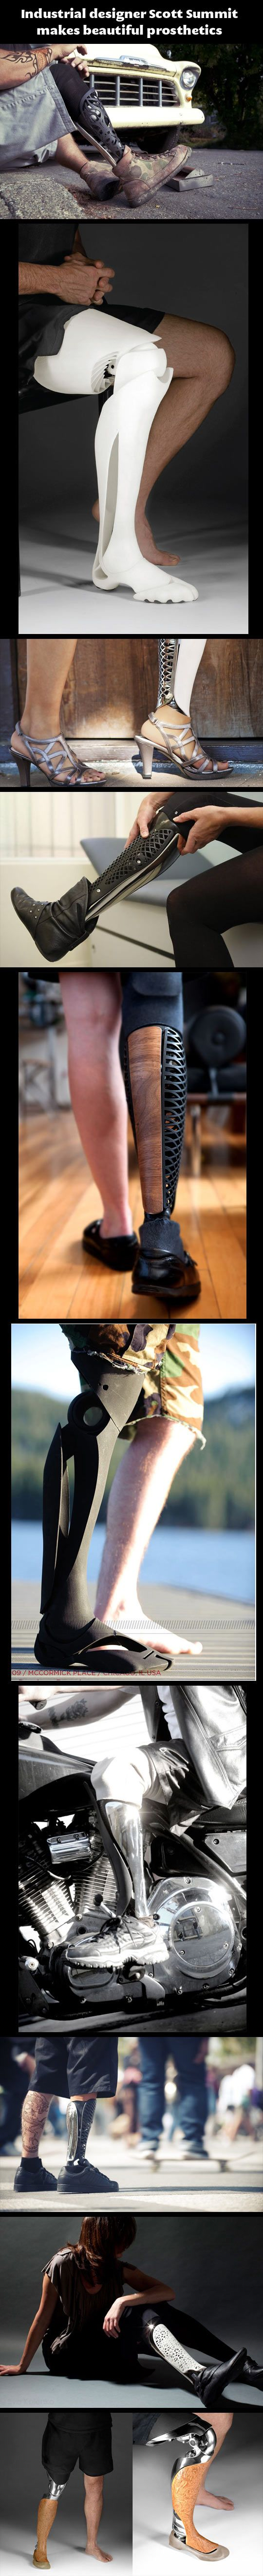 Beautiful prosthetics…Design Scott, 3Dprint, 3D Prints Art, Prosthetic Limb, Prints Prosthetic, Scott Summit, Prosthetic Legs, Industrial Design, Beautiful Prosthetic